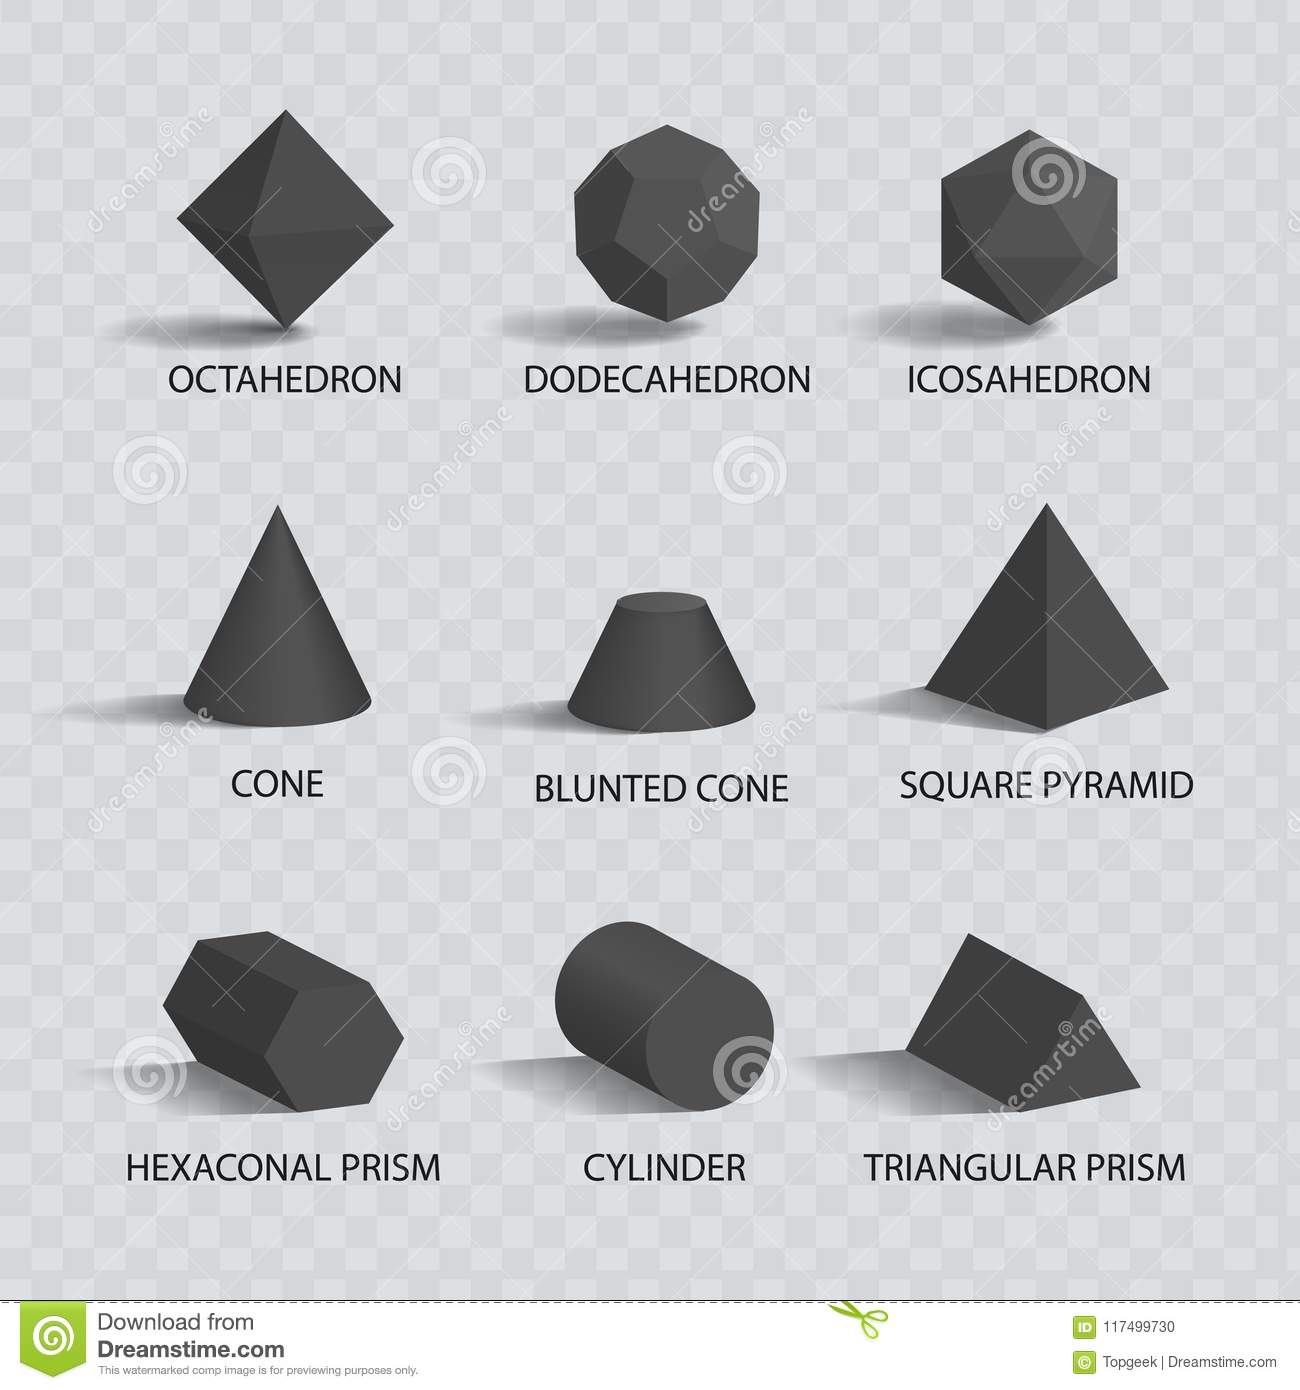 octahedron and dodecahedron vector illustration stock vector